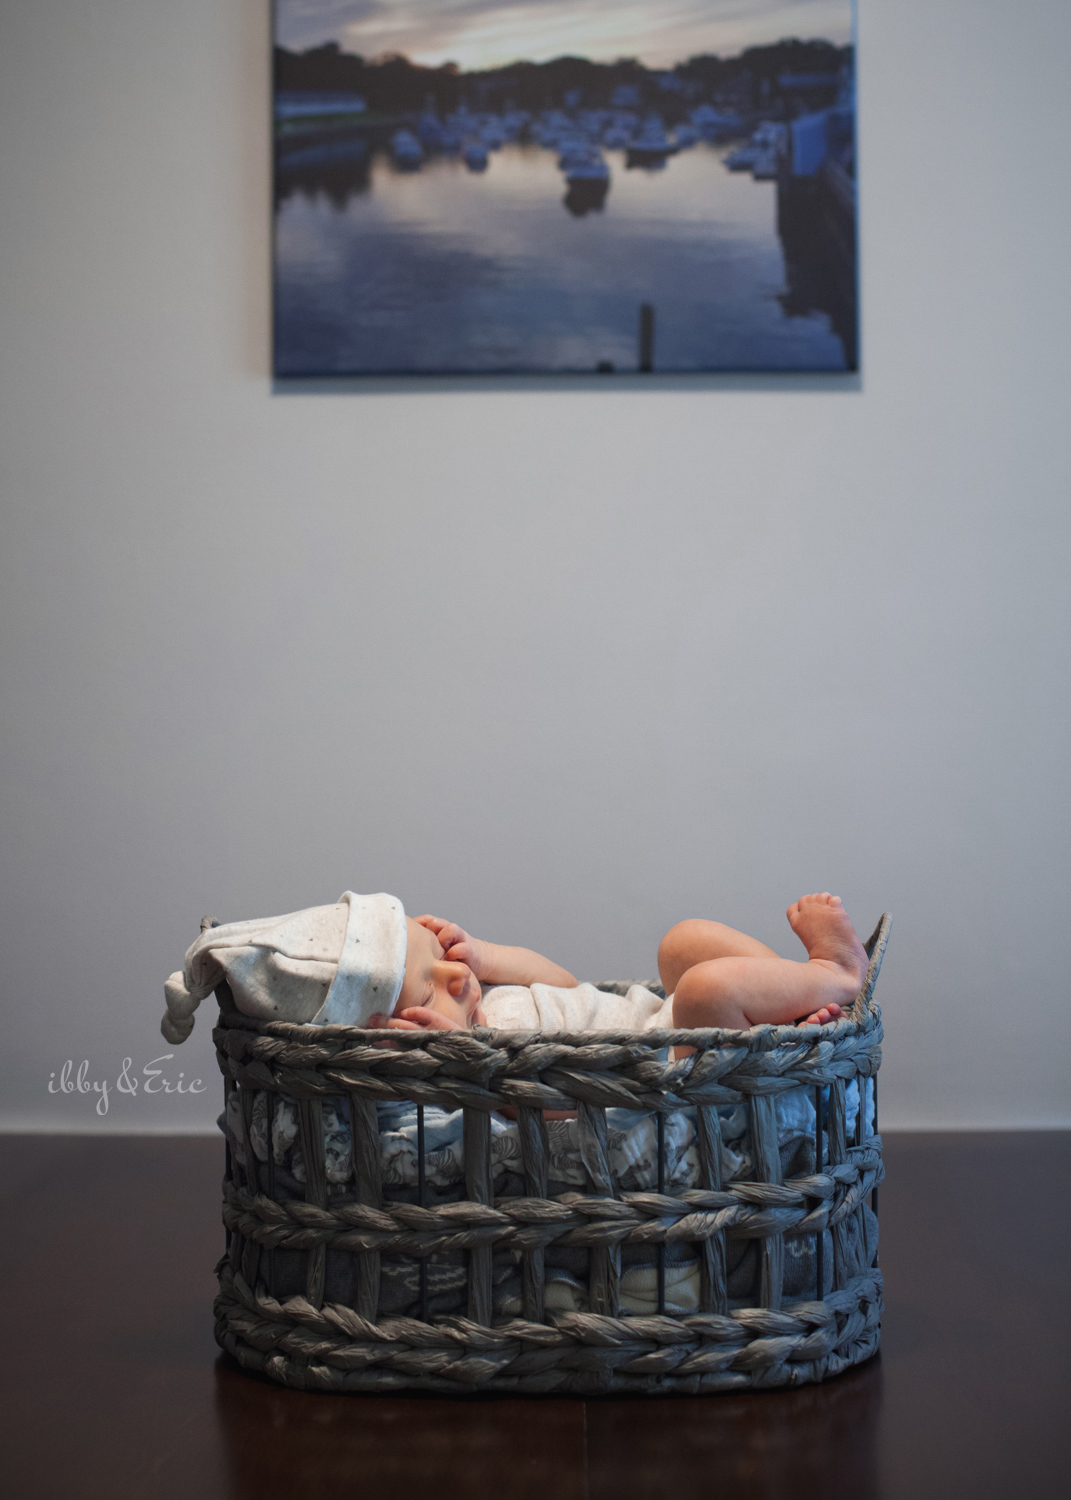 Massachusetts in home newborn photo of a one week old baby boy in a gray basket.